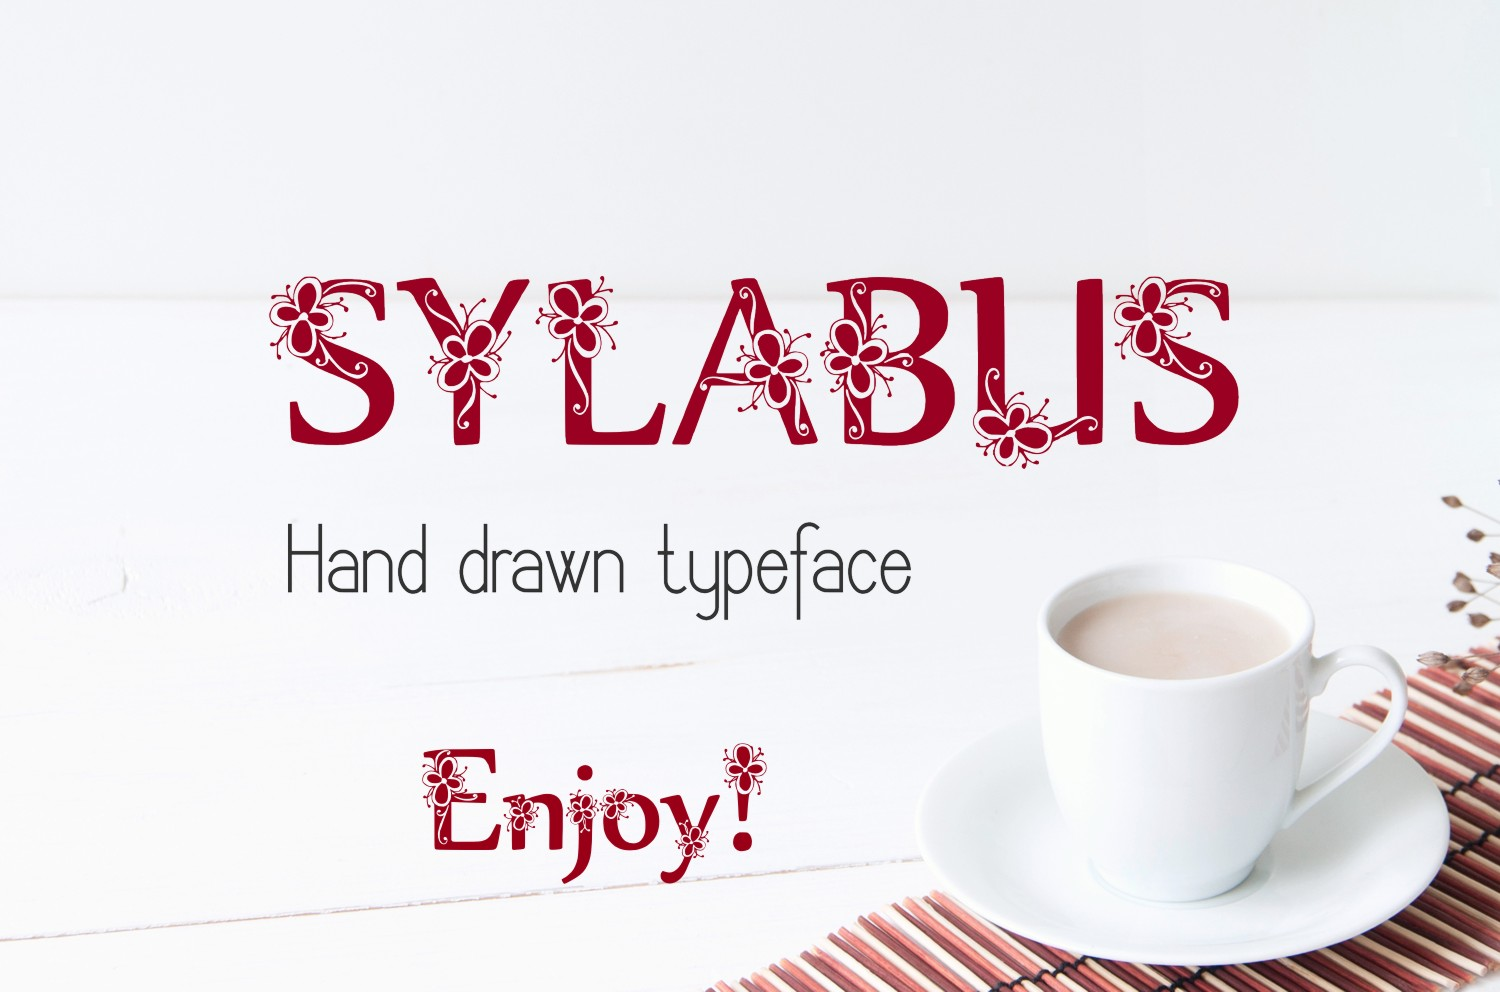 Sylabus font example image 2